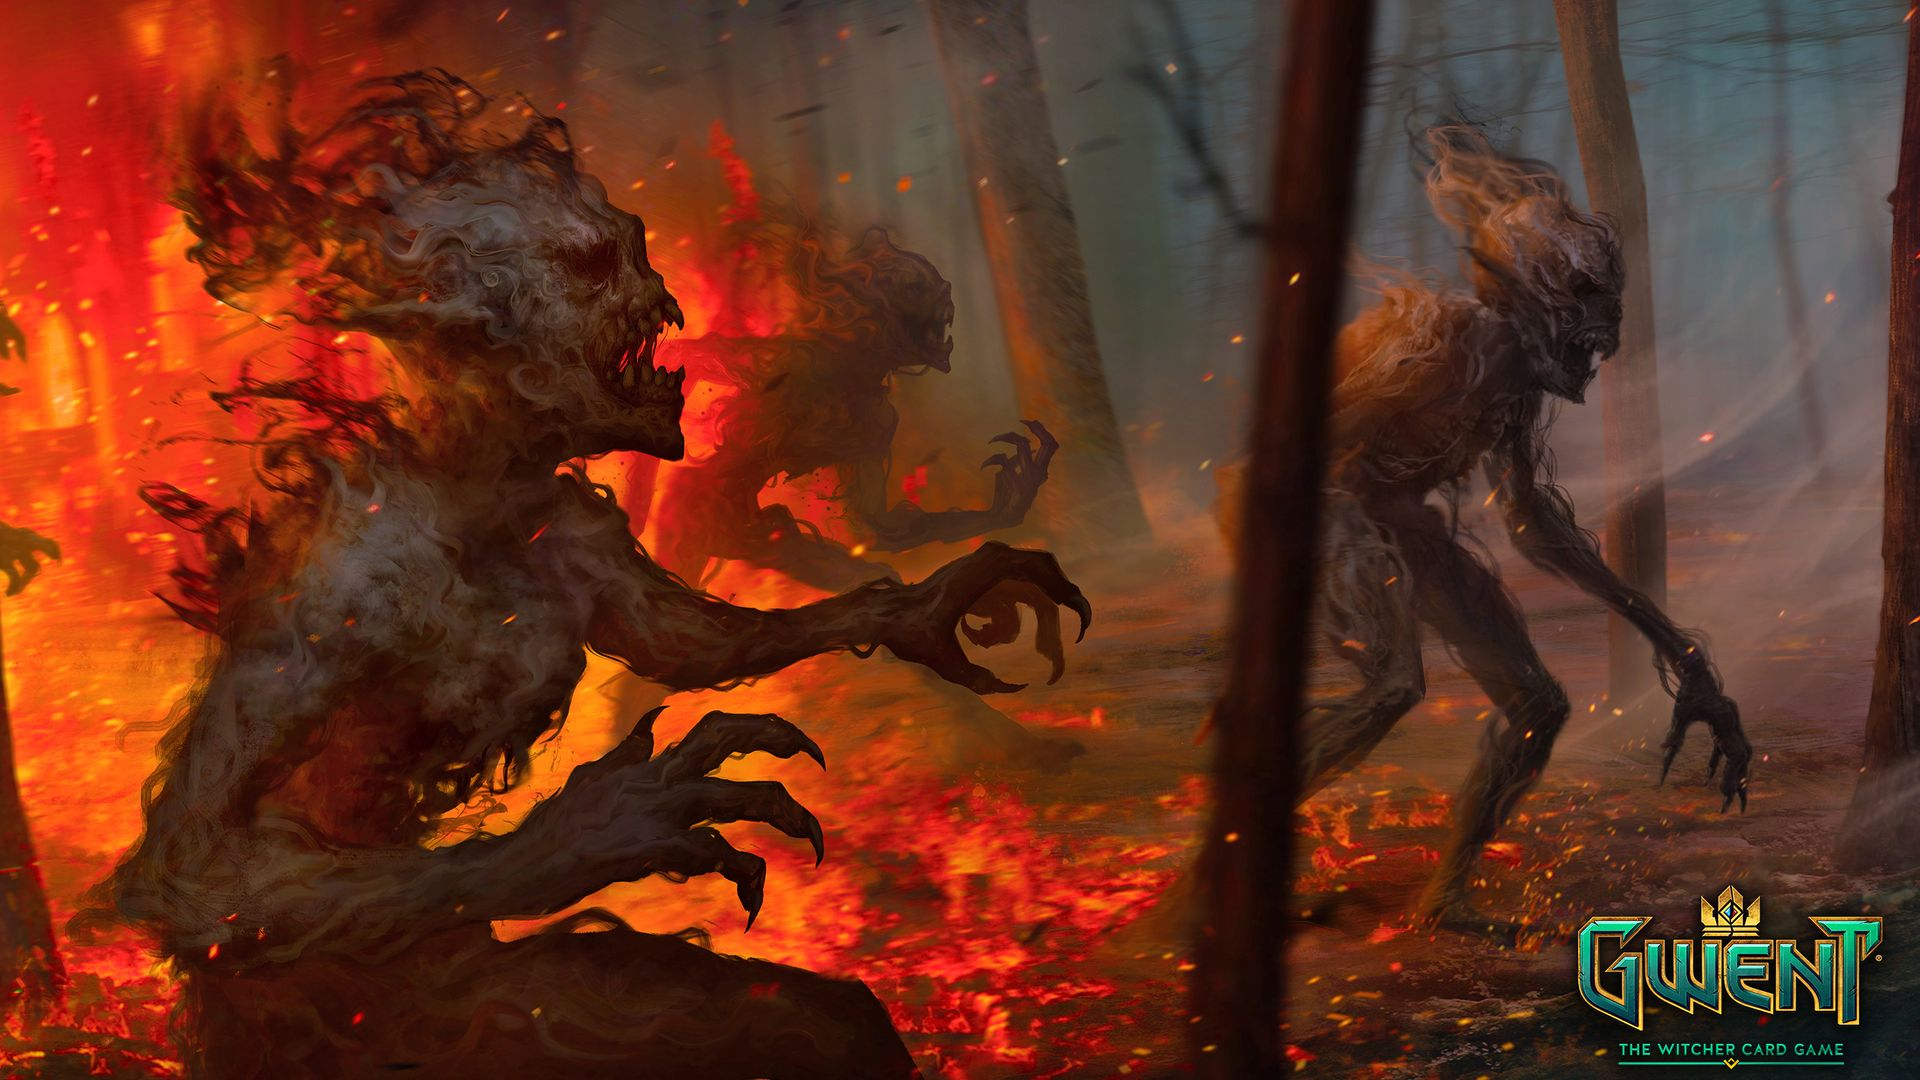 Gwent The Witcher Card Game Burning Monsters In The Forest W